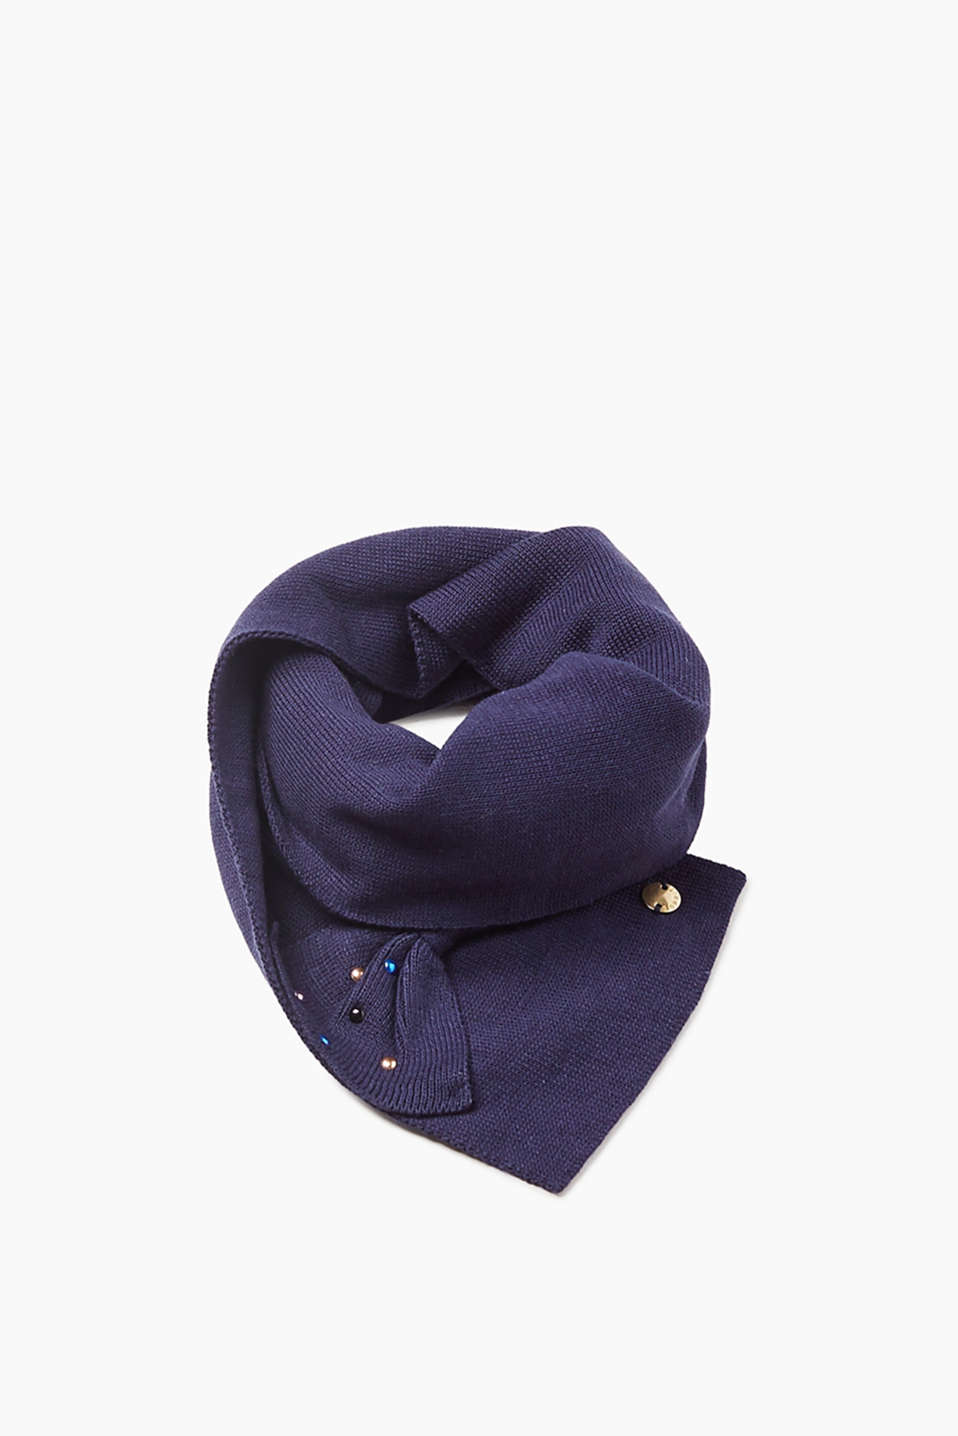 Esprit - Knit scarf with a decorative bow + studs